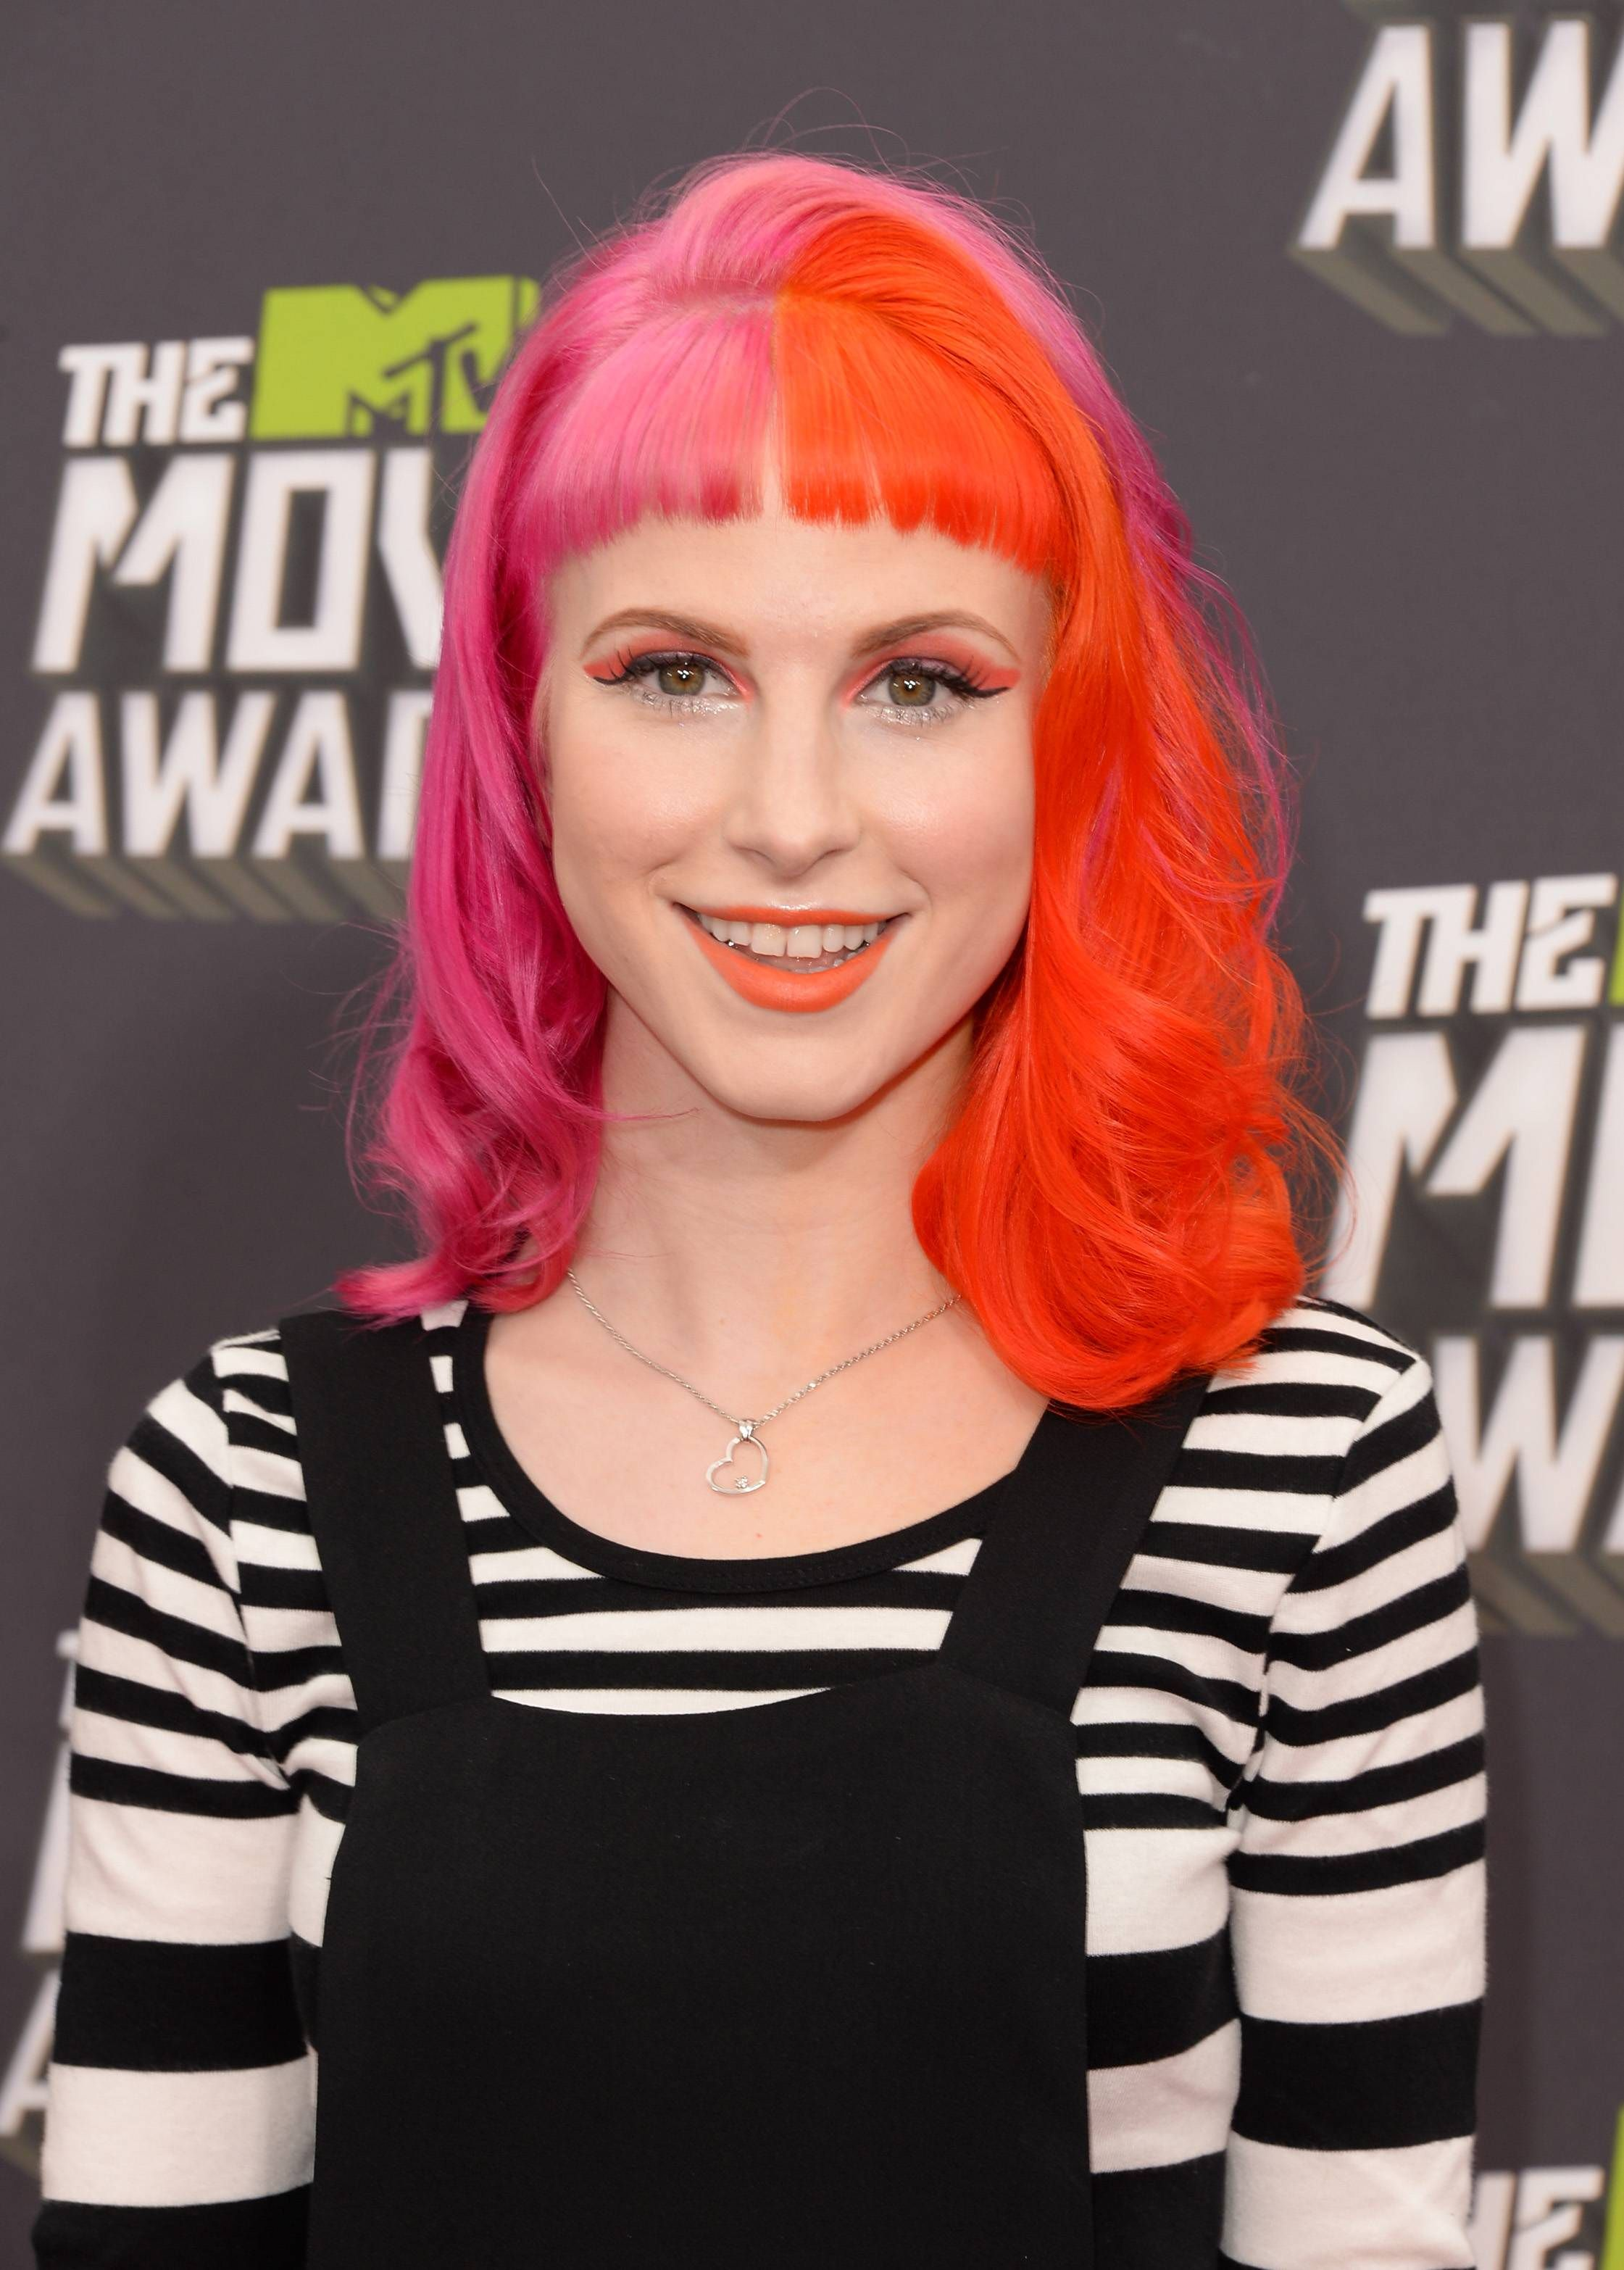 Hayley williams girlssmiling pinterest girl smile and girls